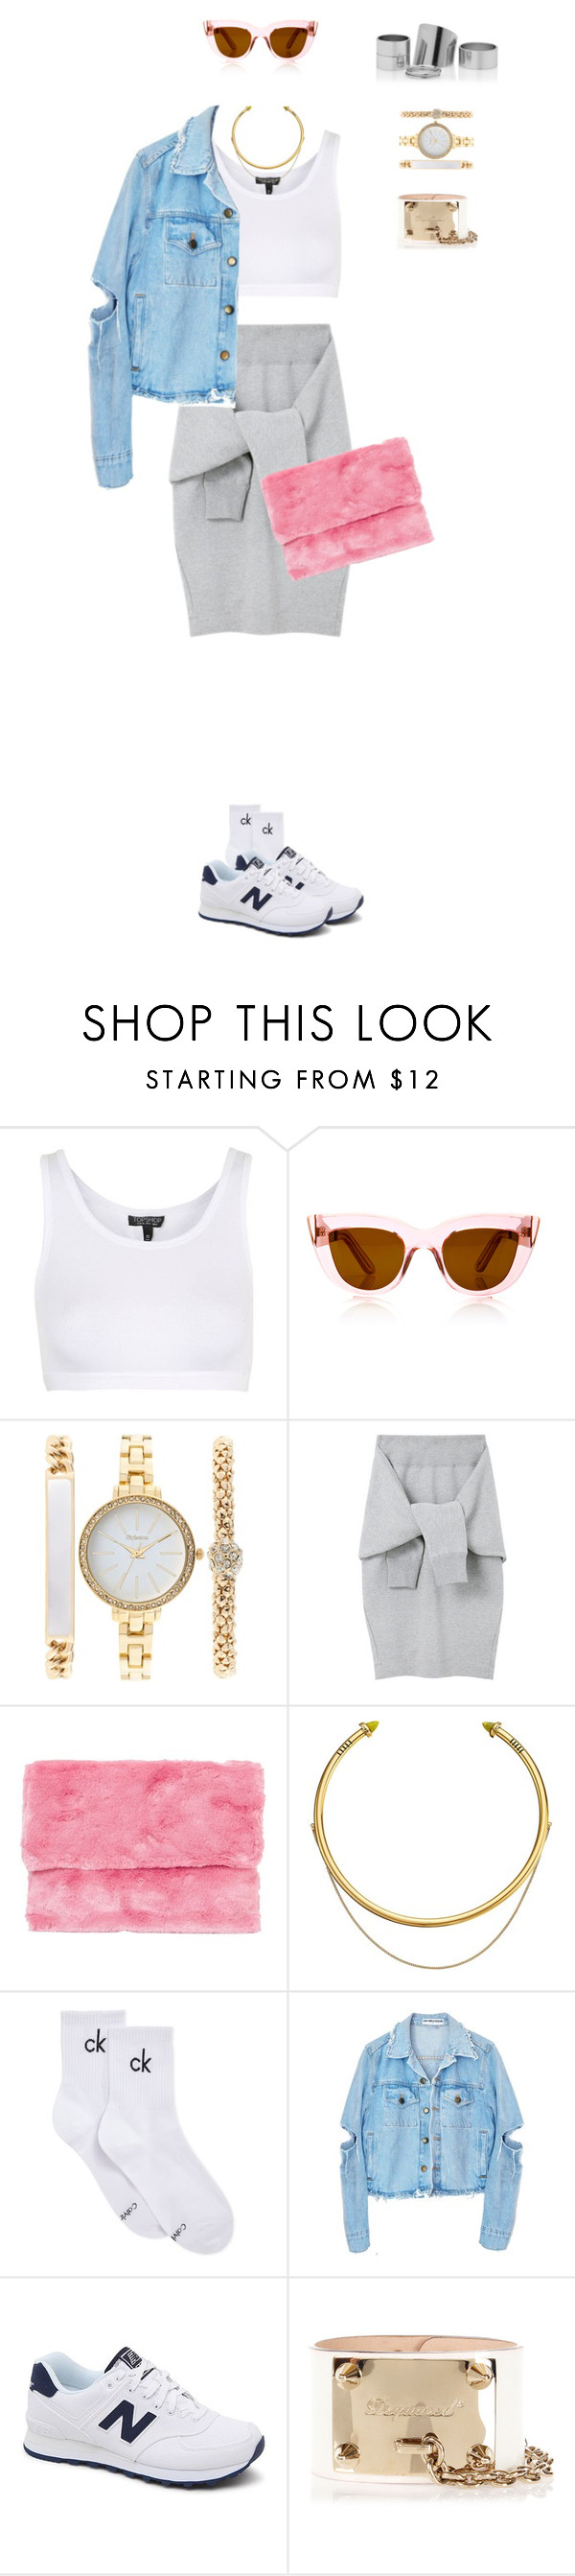 """888"" by julialeskiv on Polyvore featuring мода, Topshop, E L L E R Y, Style & Co., Le Ciel Bleu, OBEY Clothing, Calvin Klein, New Balance и Dsquared2"